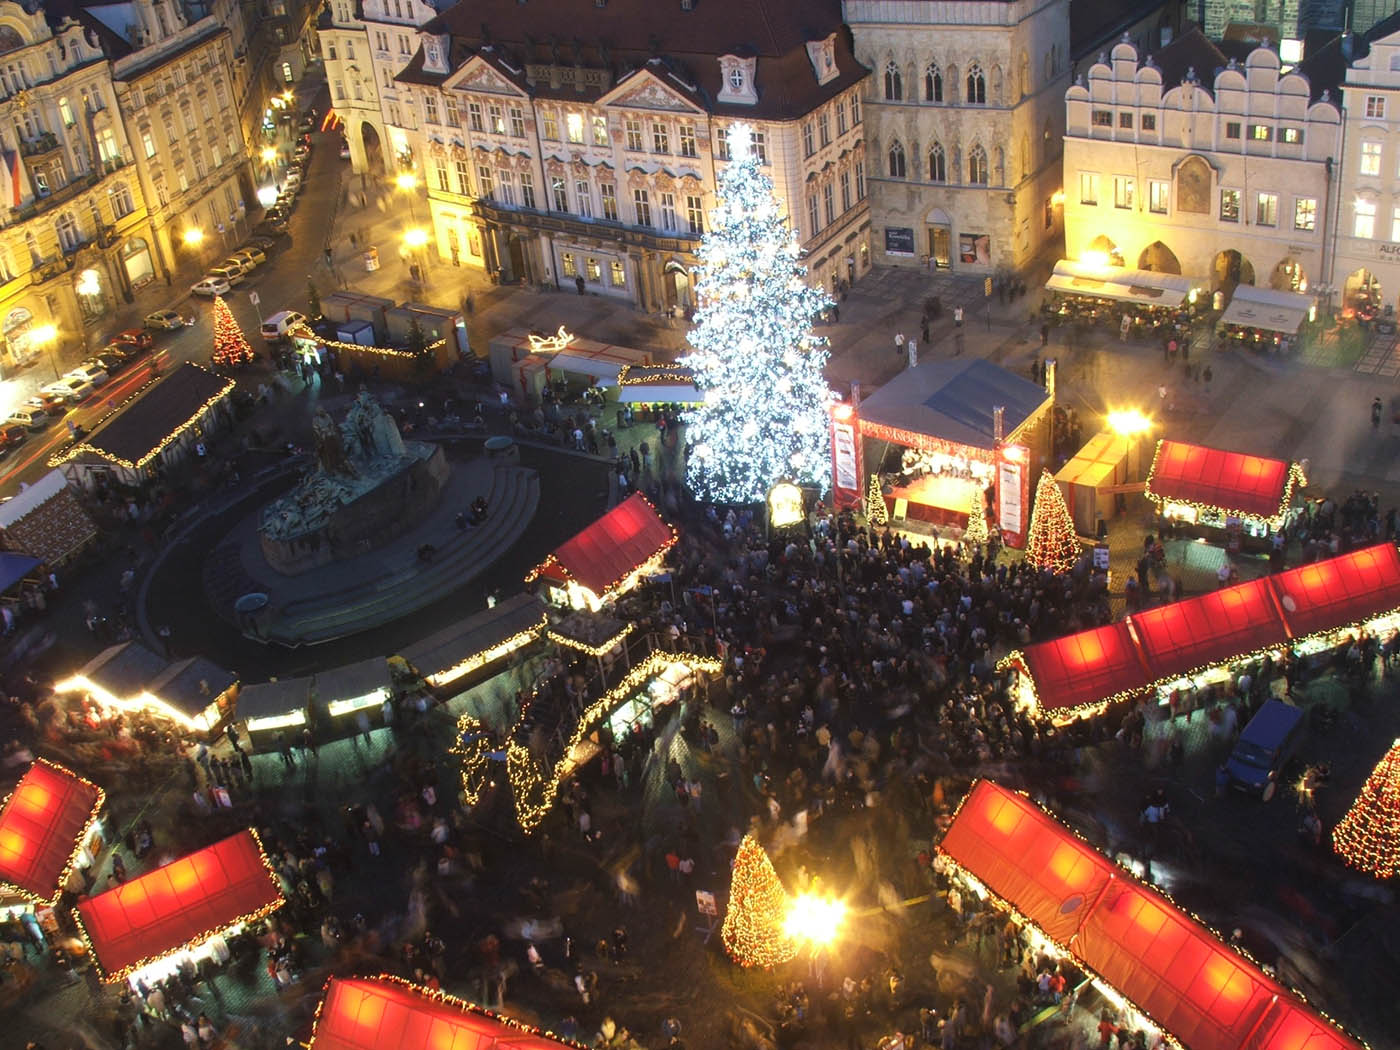 http://upload.wikimedia.org/wikipedia/commons/9/9d/Prague_christmas_market_9949a.jpg